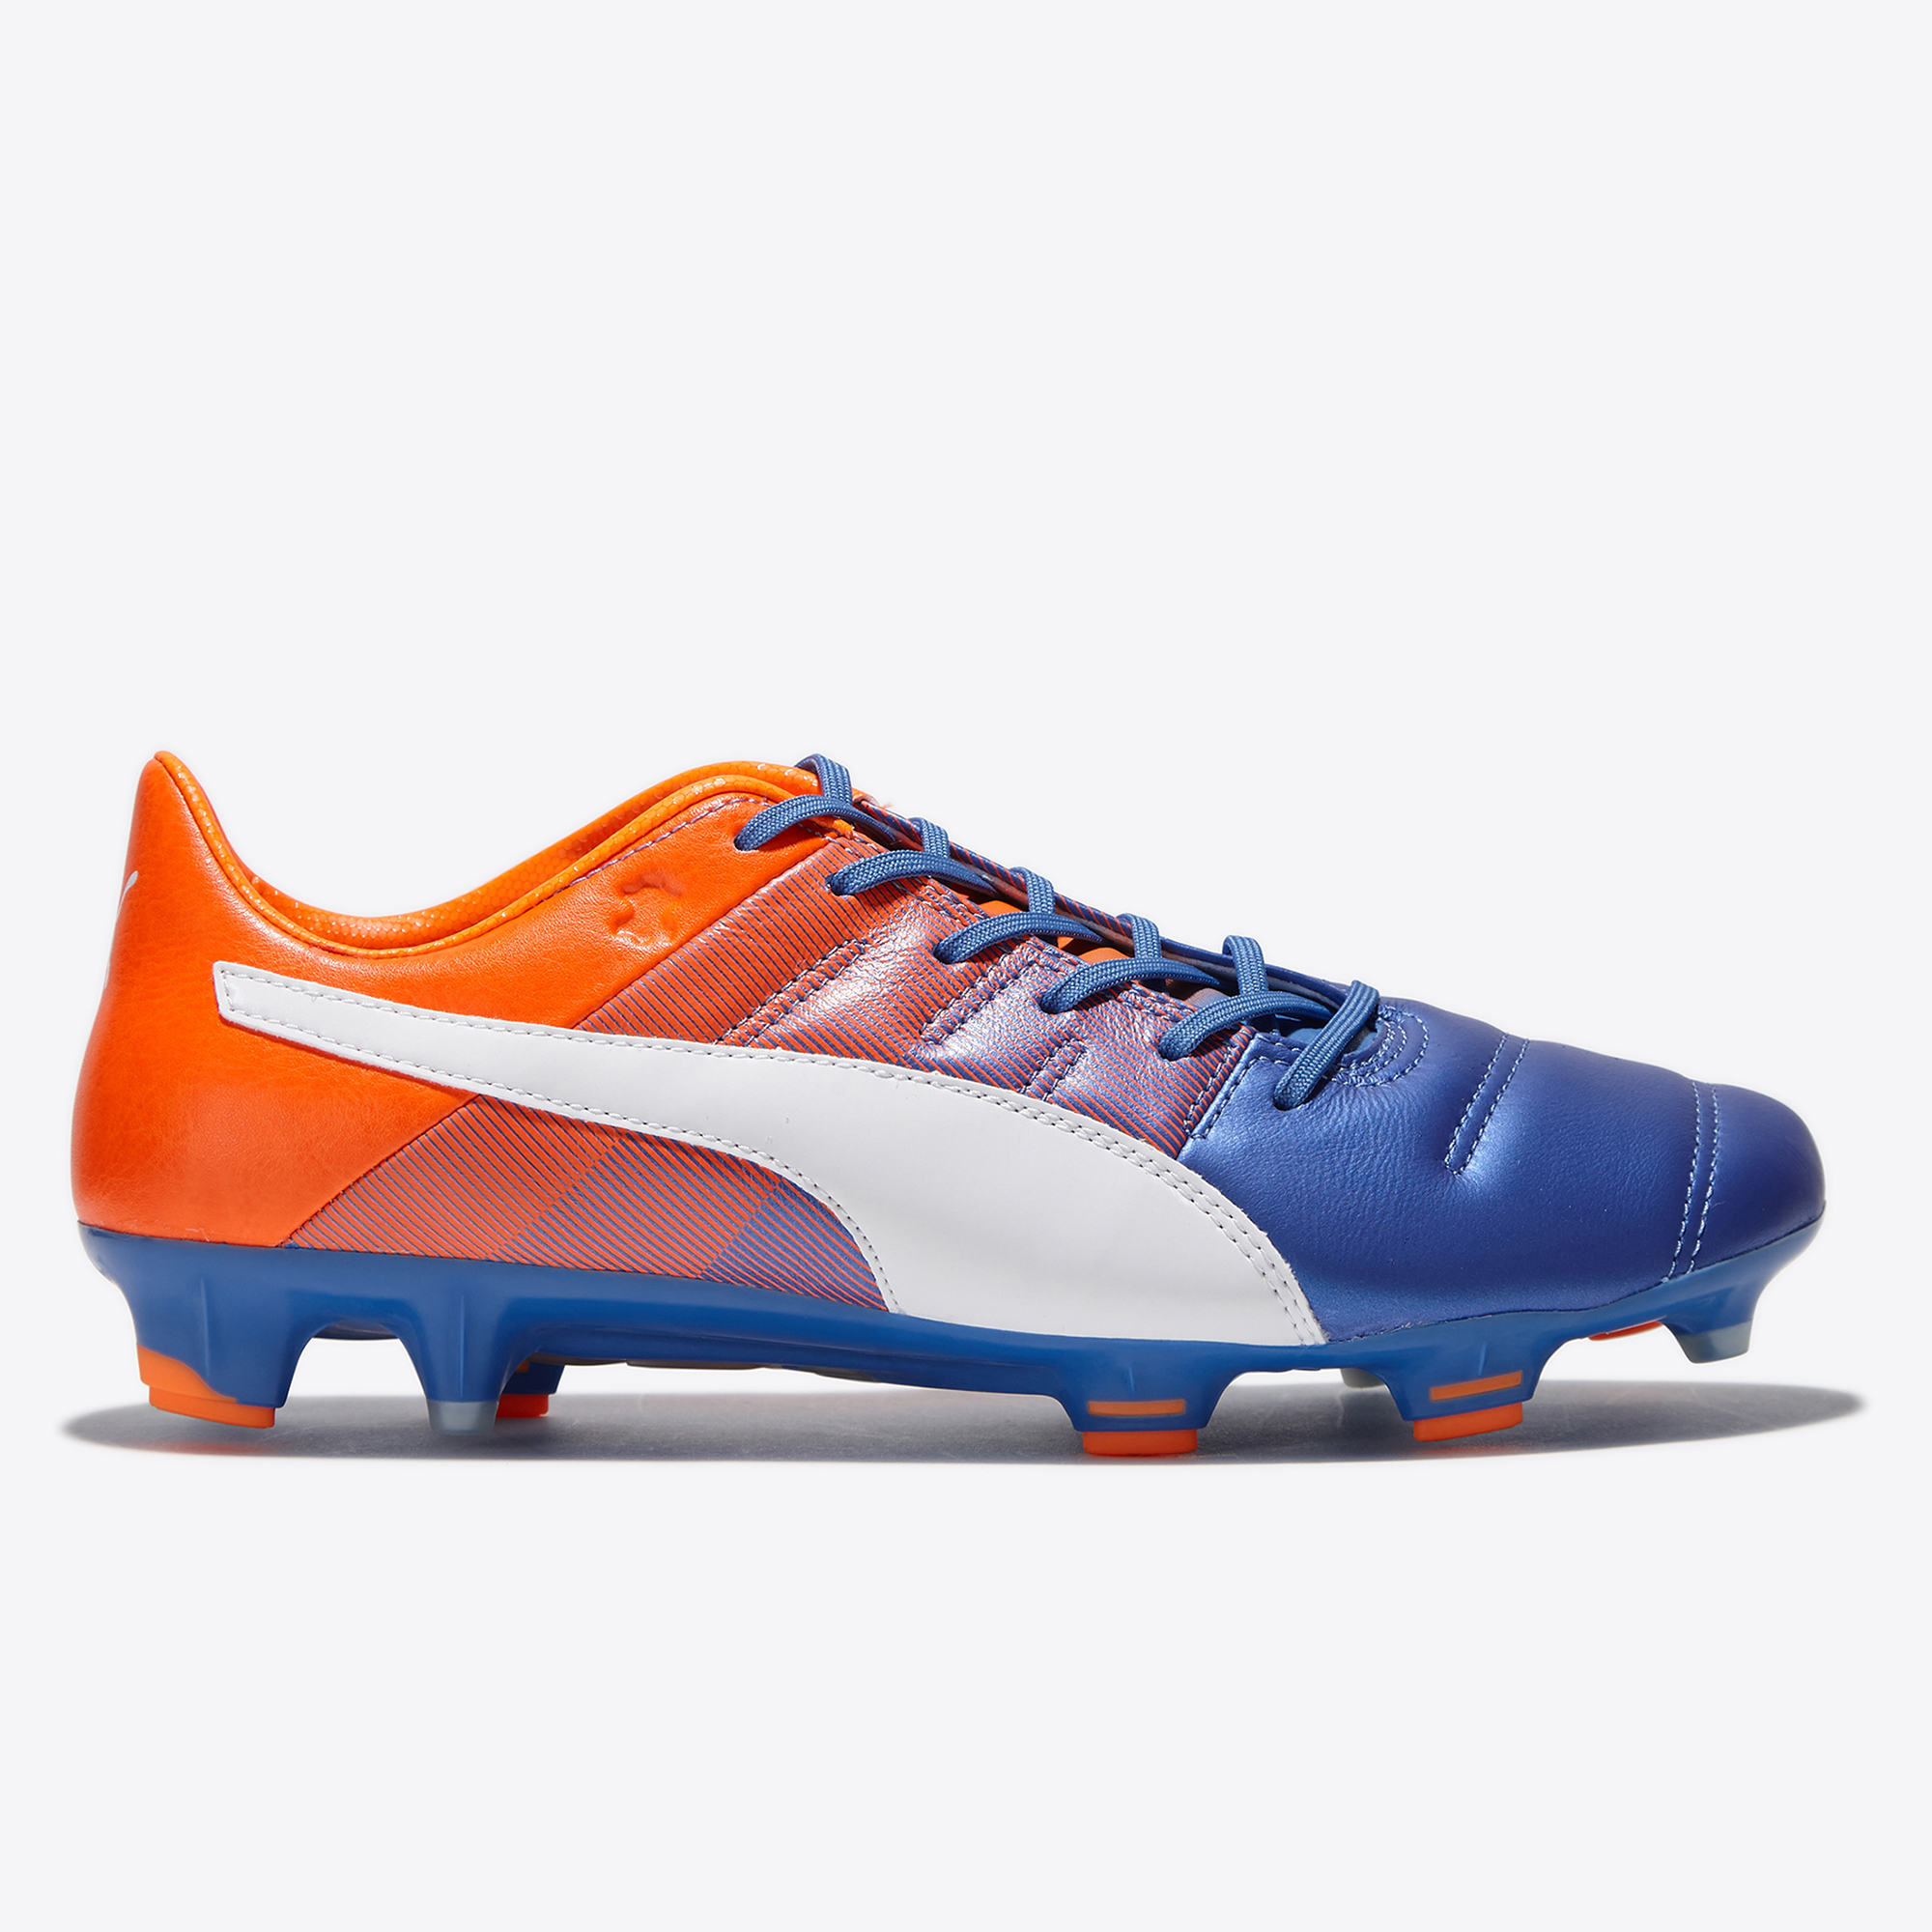 Puma evoPOWER 1.3 Leather FG Blue Yonder/Pum